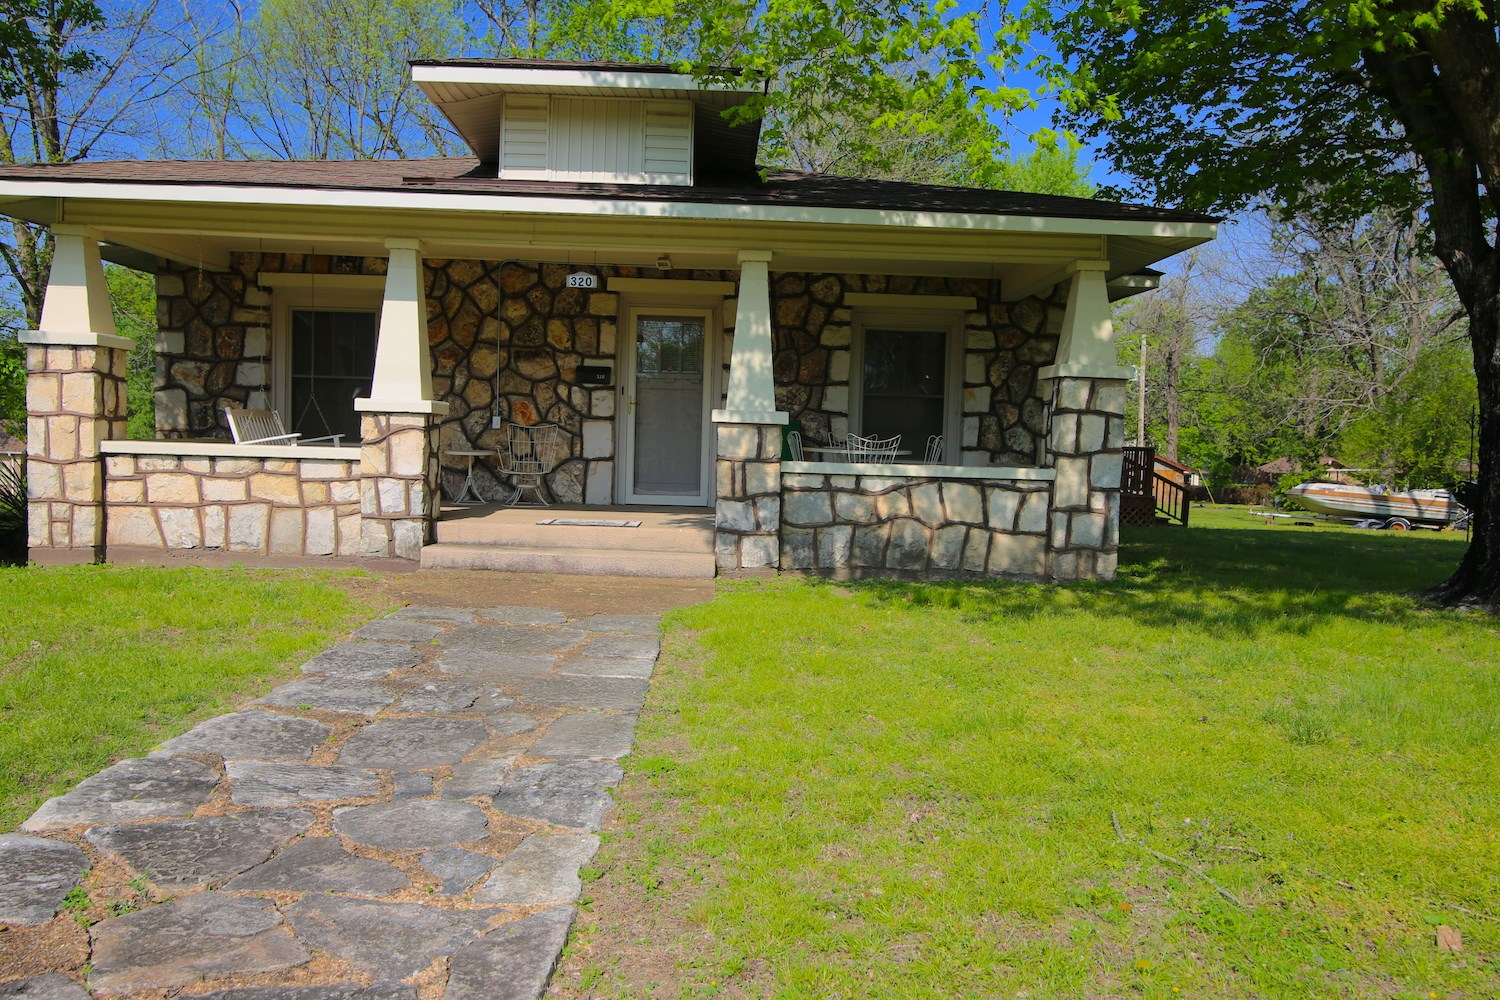 Rock Home for Sale in Thayer, Missouri